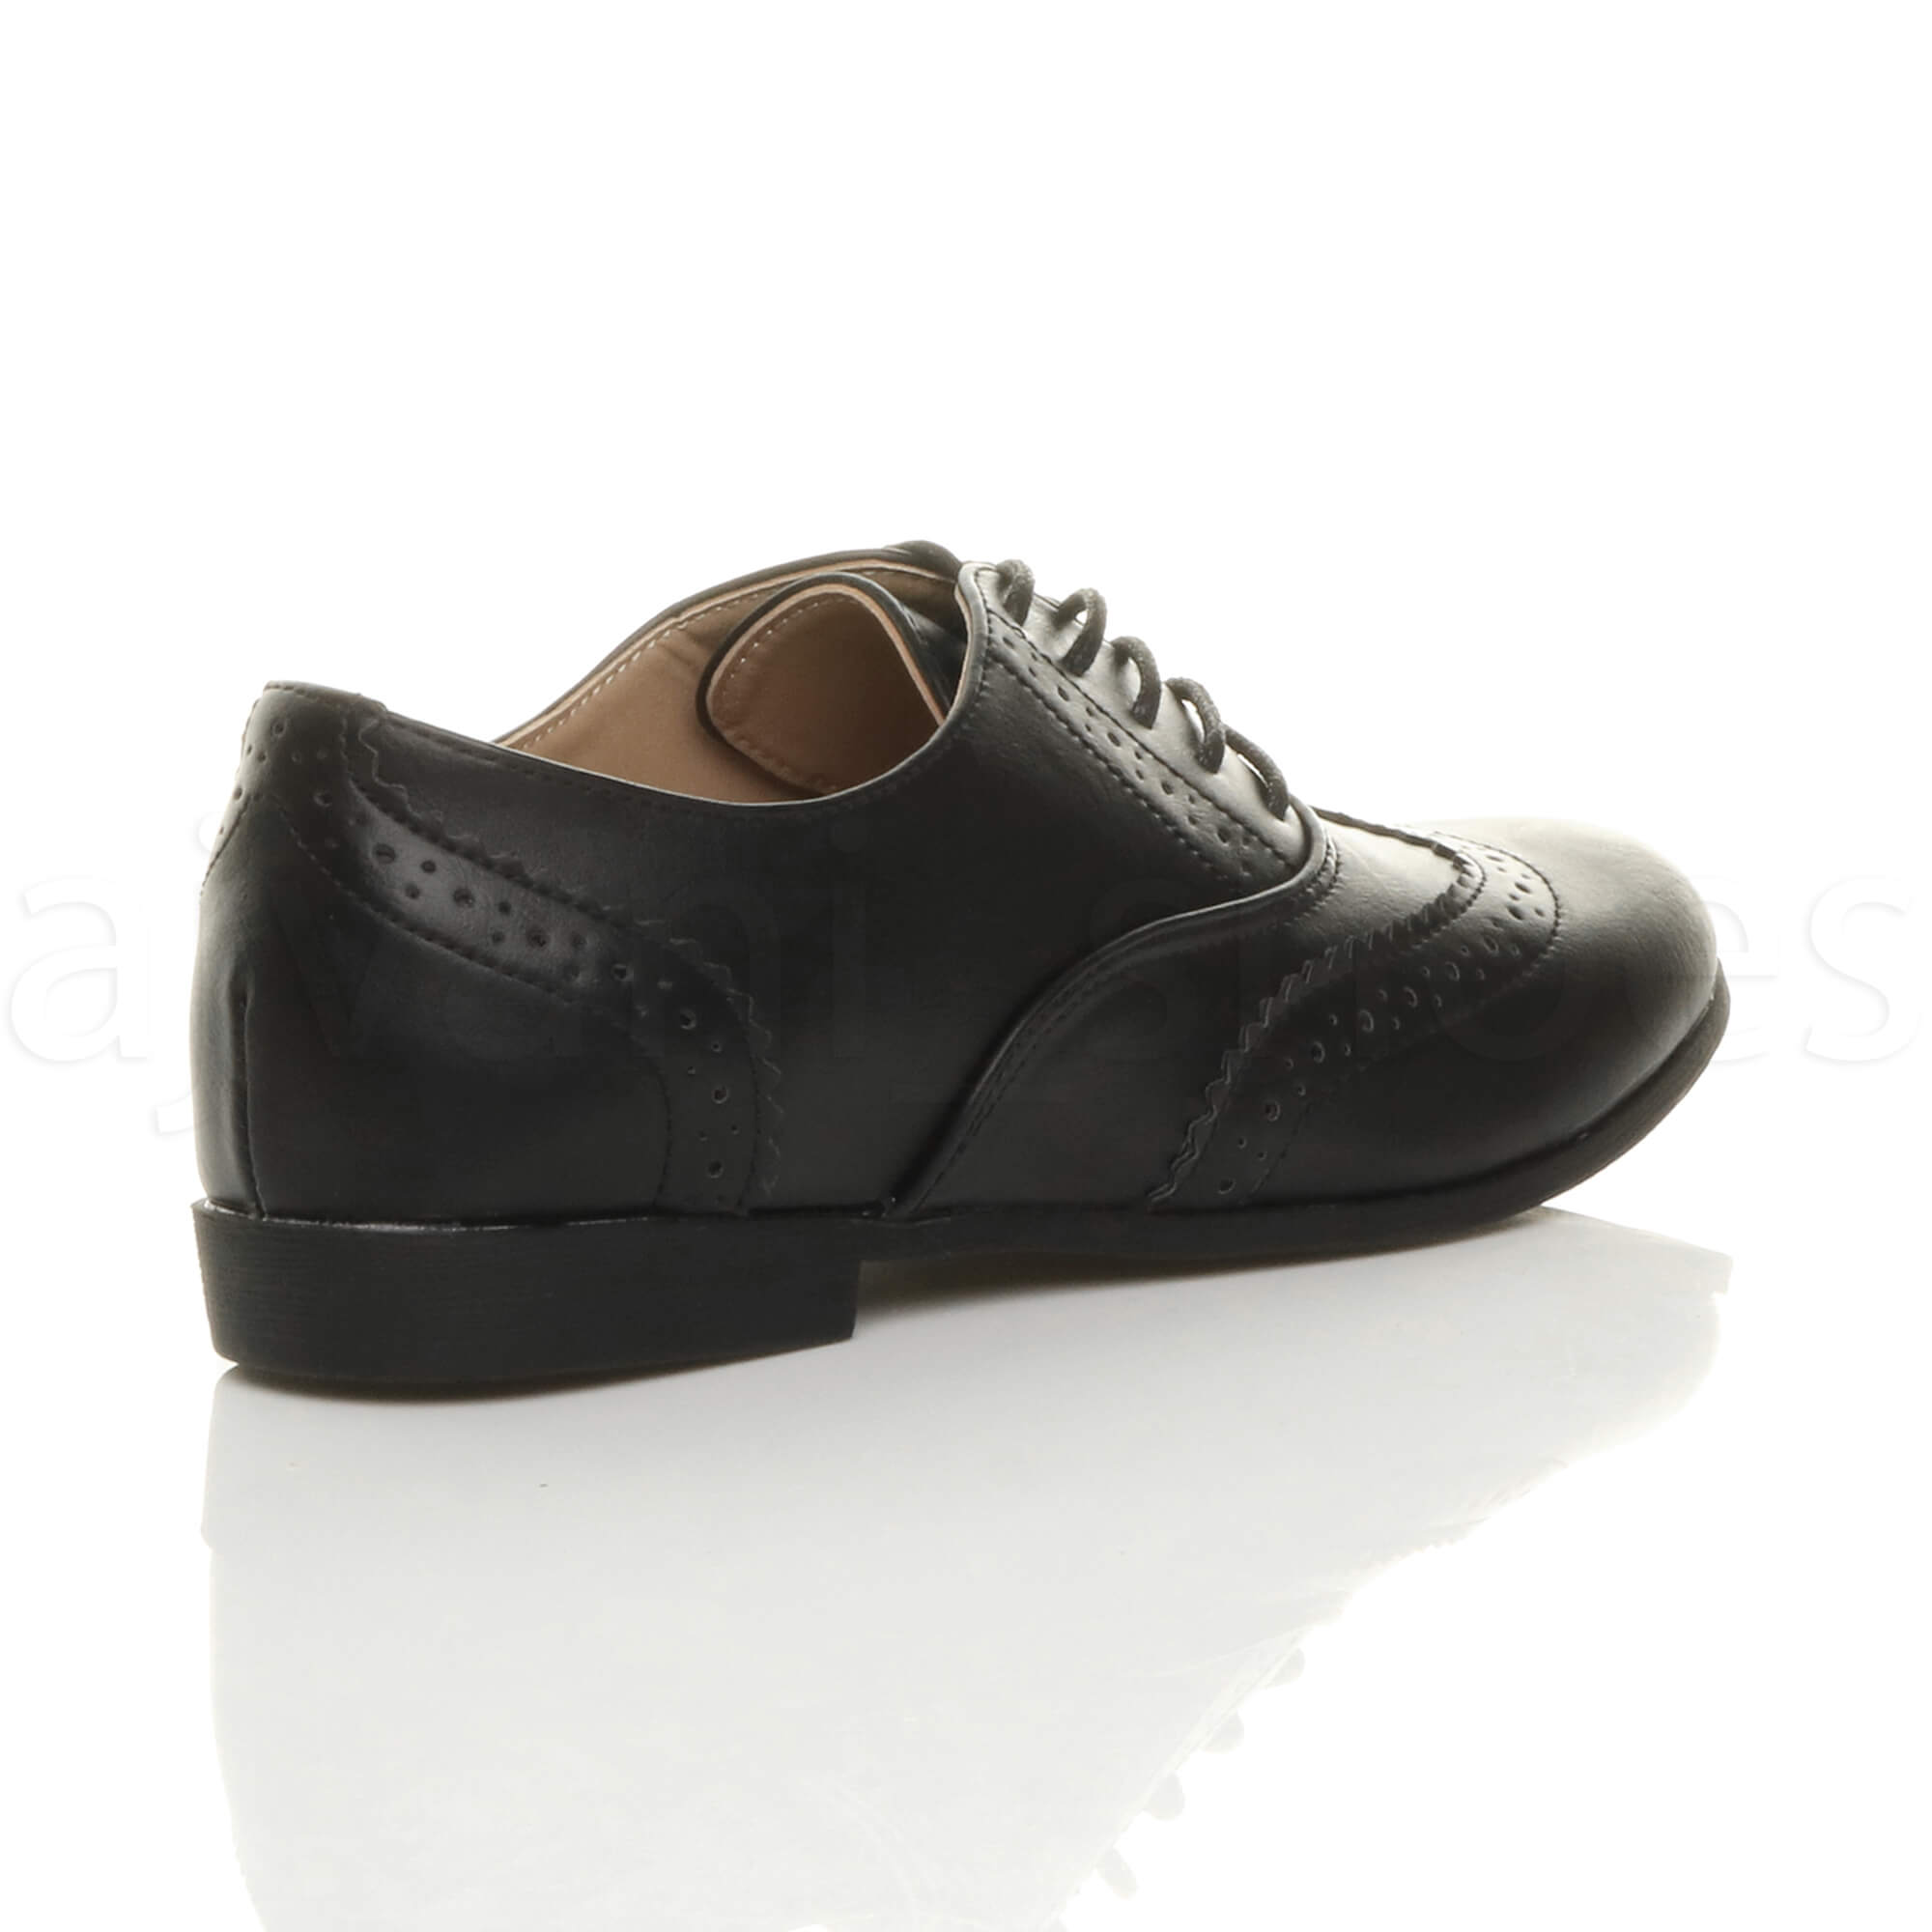 WOMENS-LADIES-FLAT-LOW-HEEL-LACE-UP-SMART-VINTAGE-OXFORD-SHOES-BROGUES-SIZE